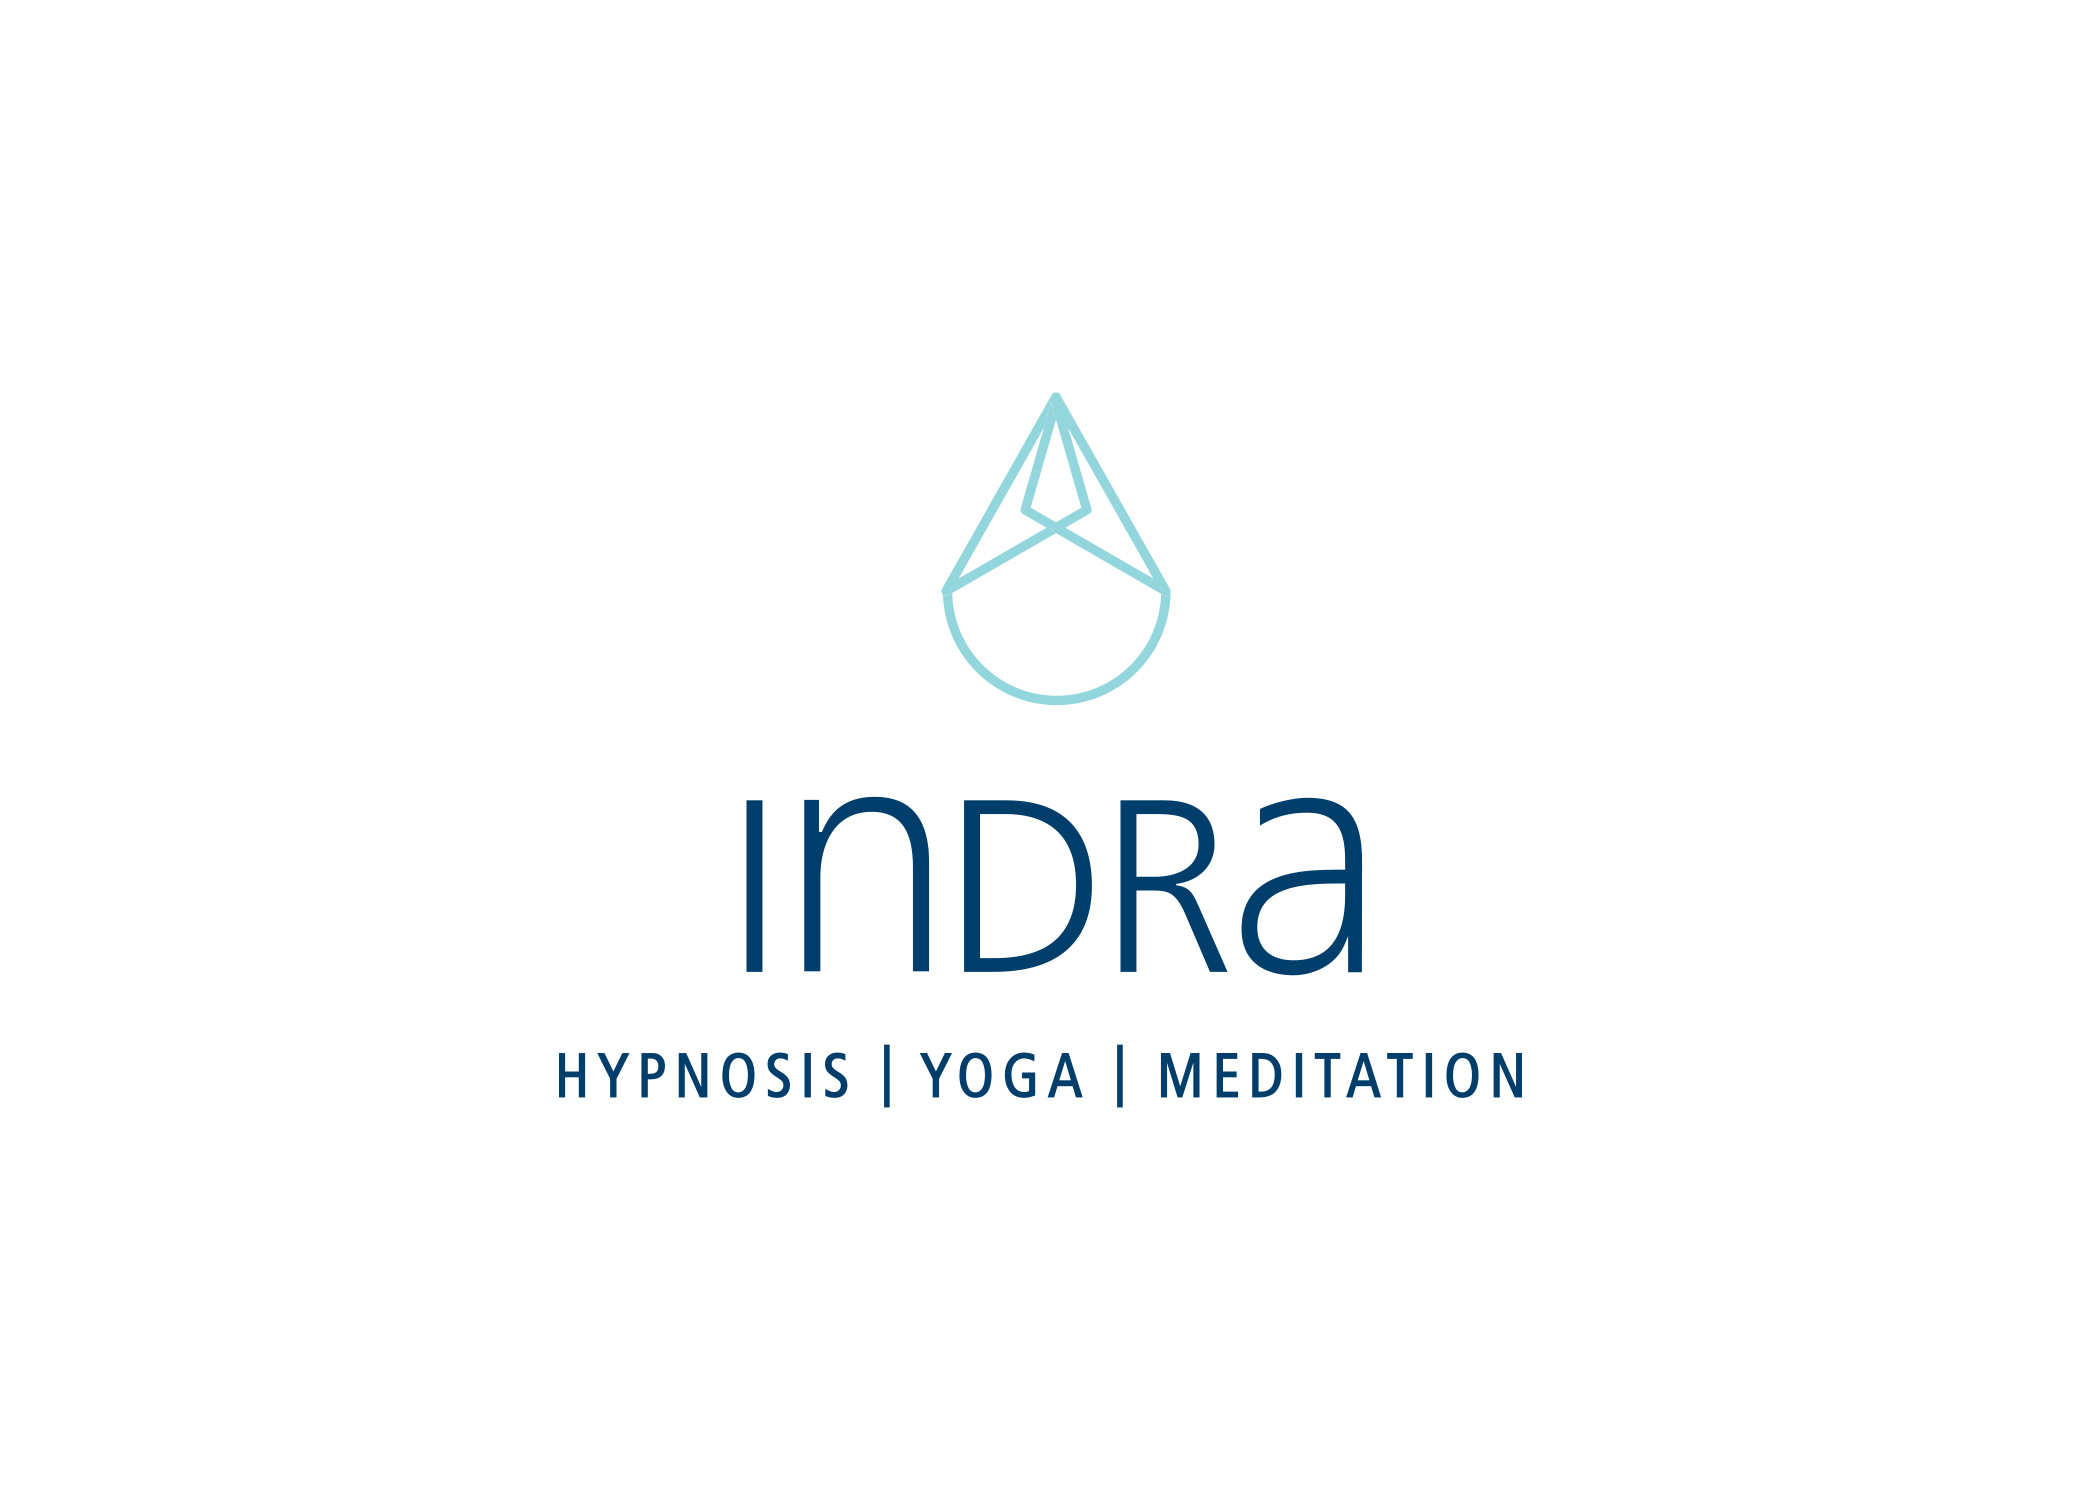 Indra logo design with combination of dark blue and light blue font and water droplet above type.